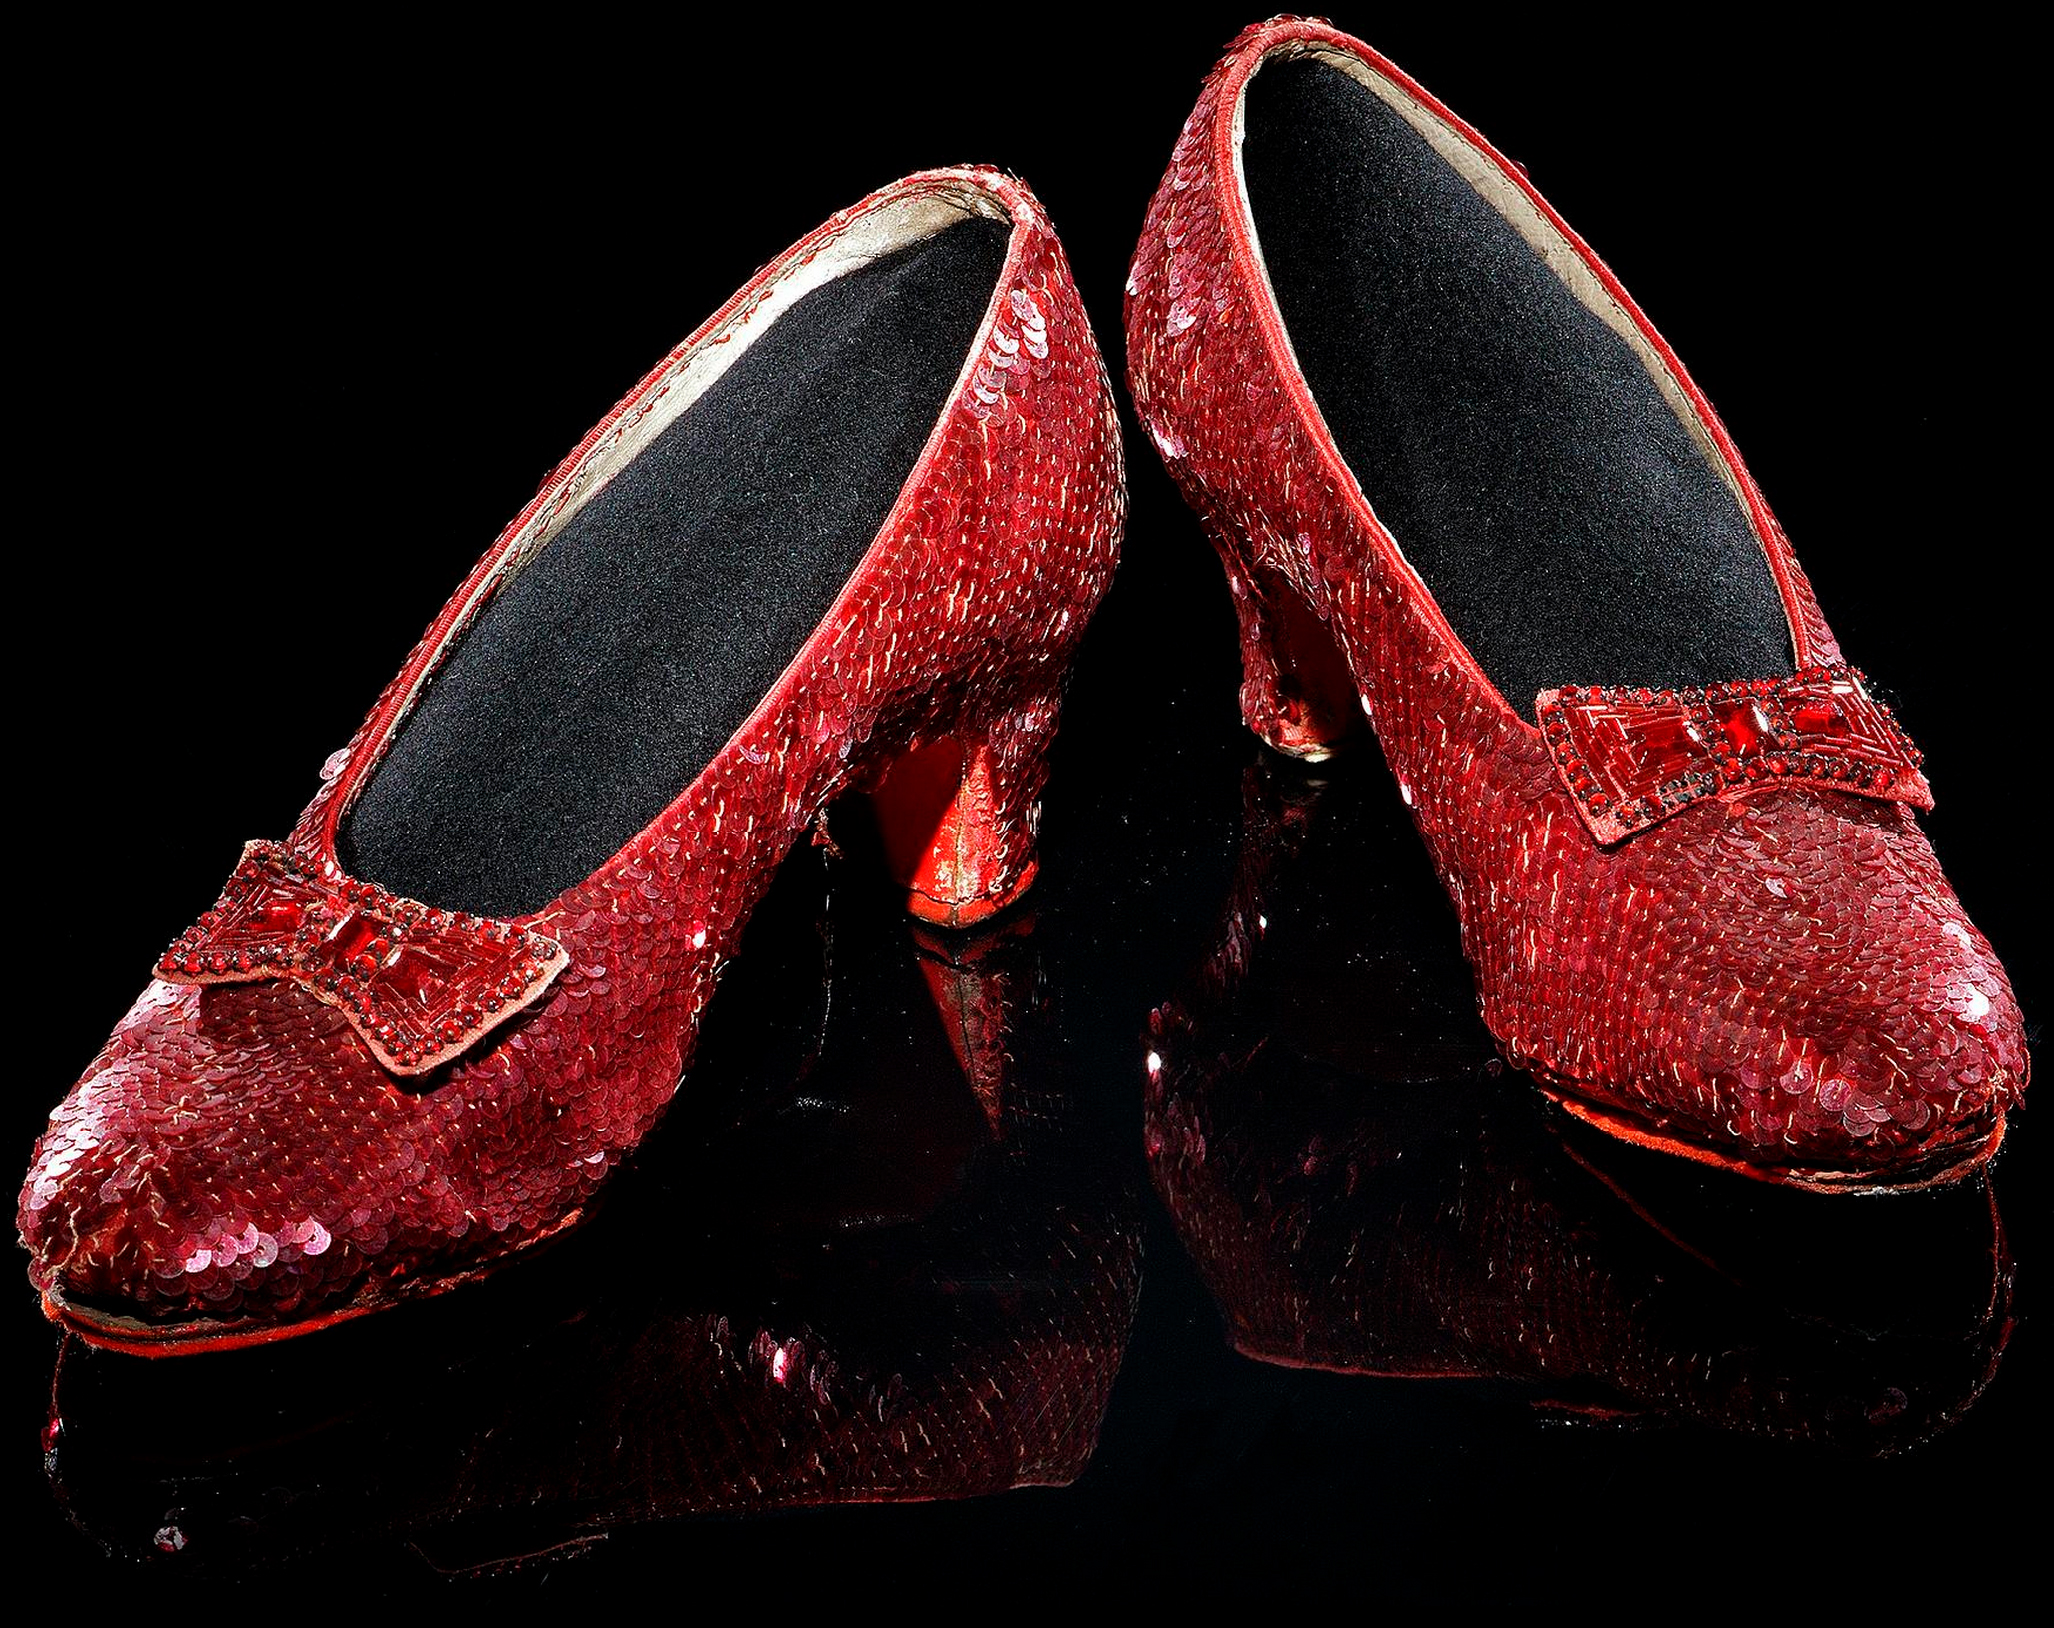 museum photos of ruby slippers from movie The Wizard of Oz